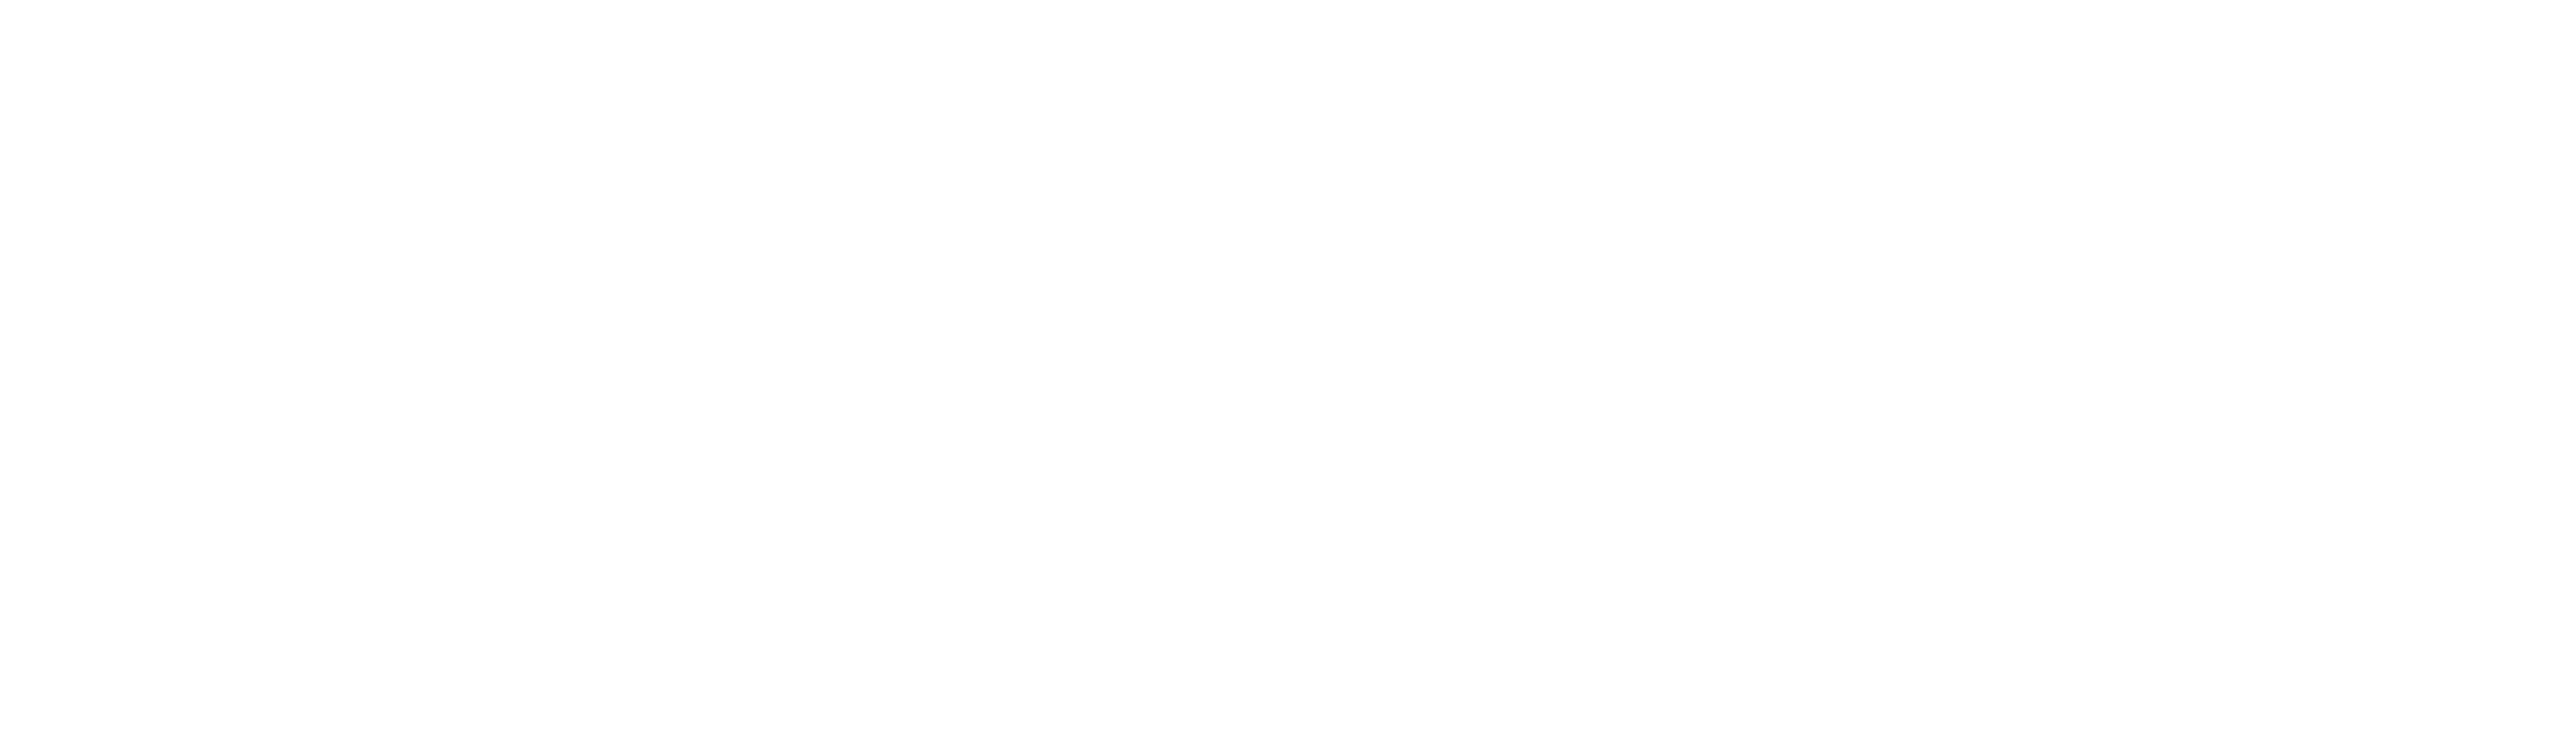 East London Pub Company Logo